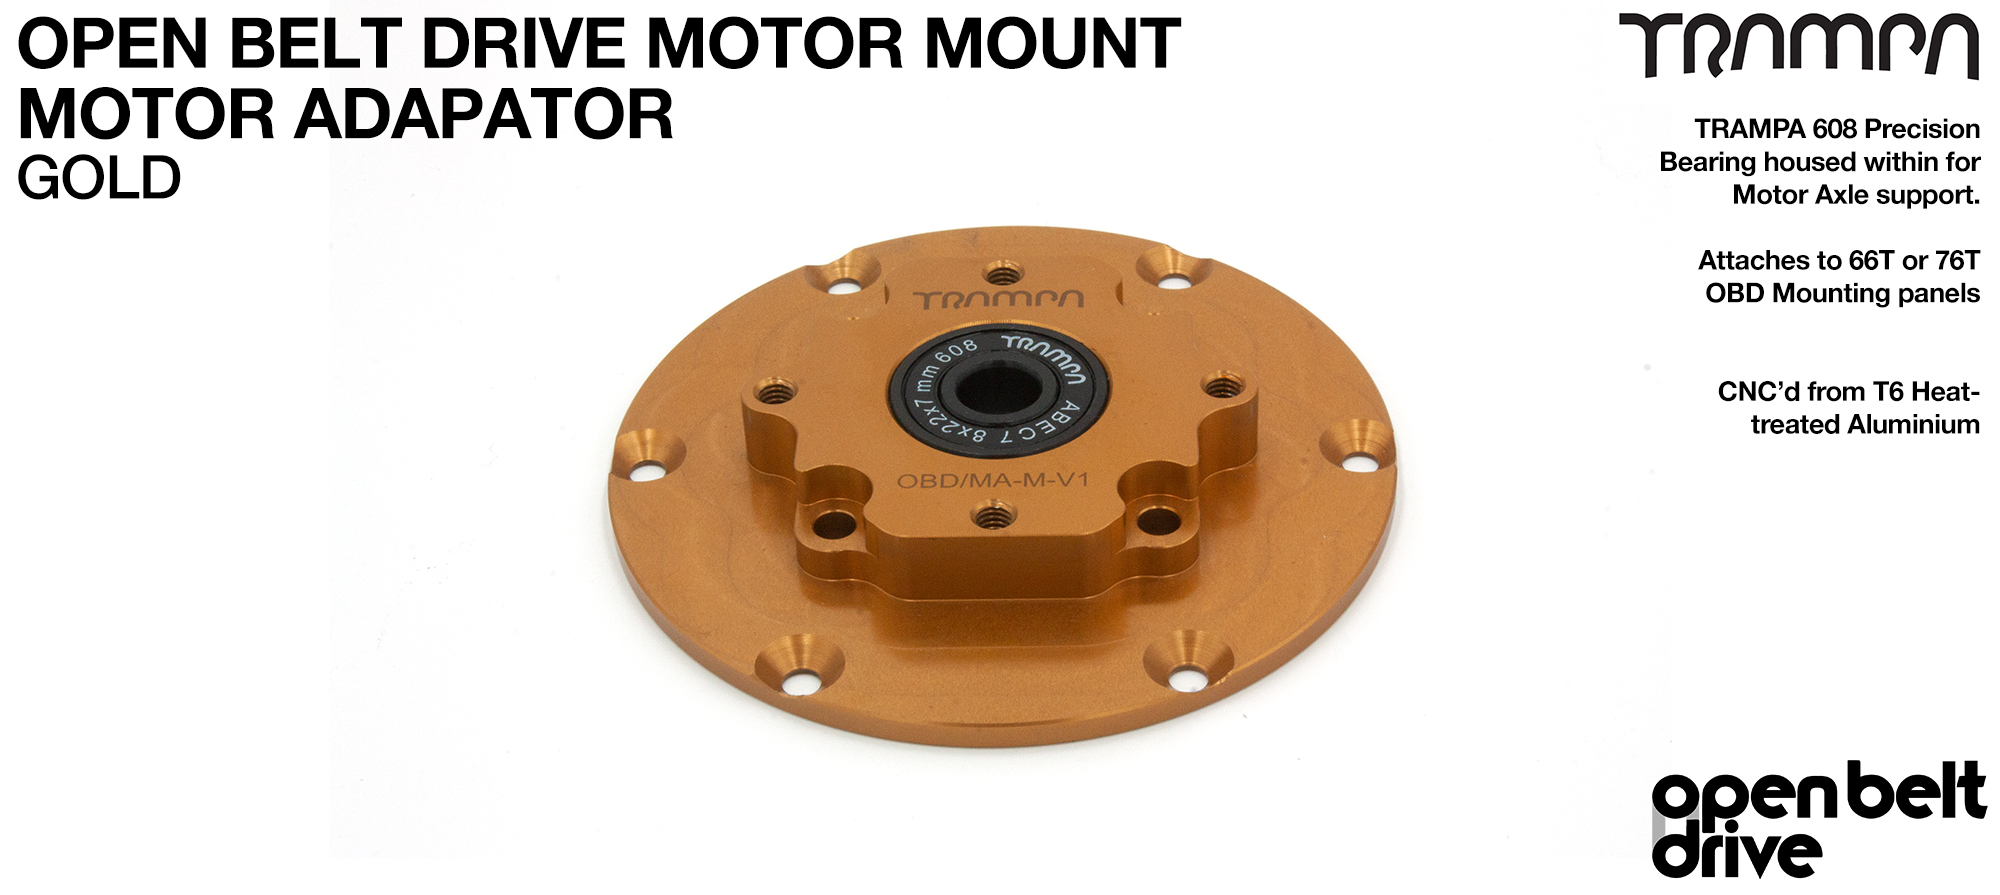 GOLD OBD Motor Adaptor with Housed Bearing